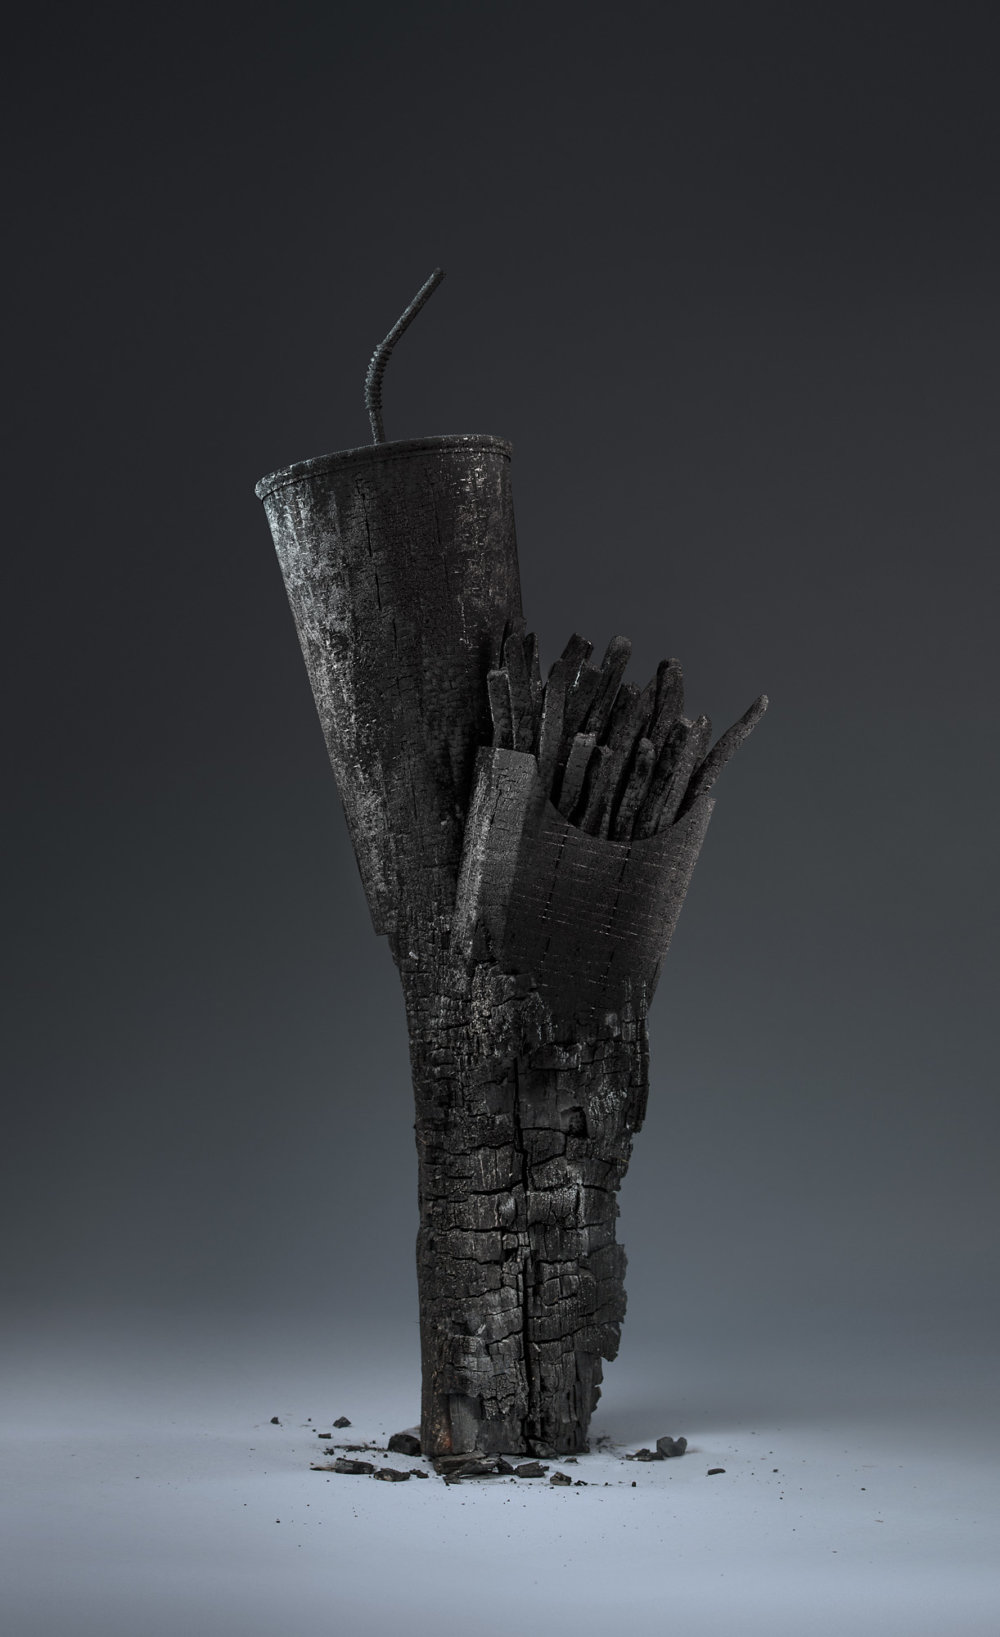 Deconstruction Of America A Critic View On The American Society By Mike Campau 3